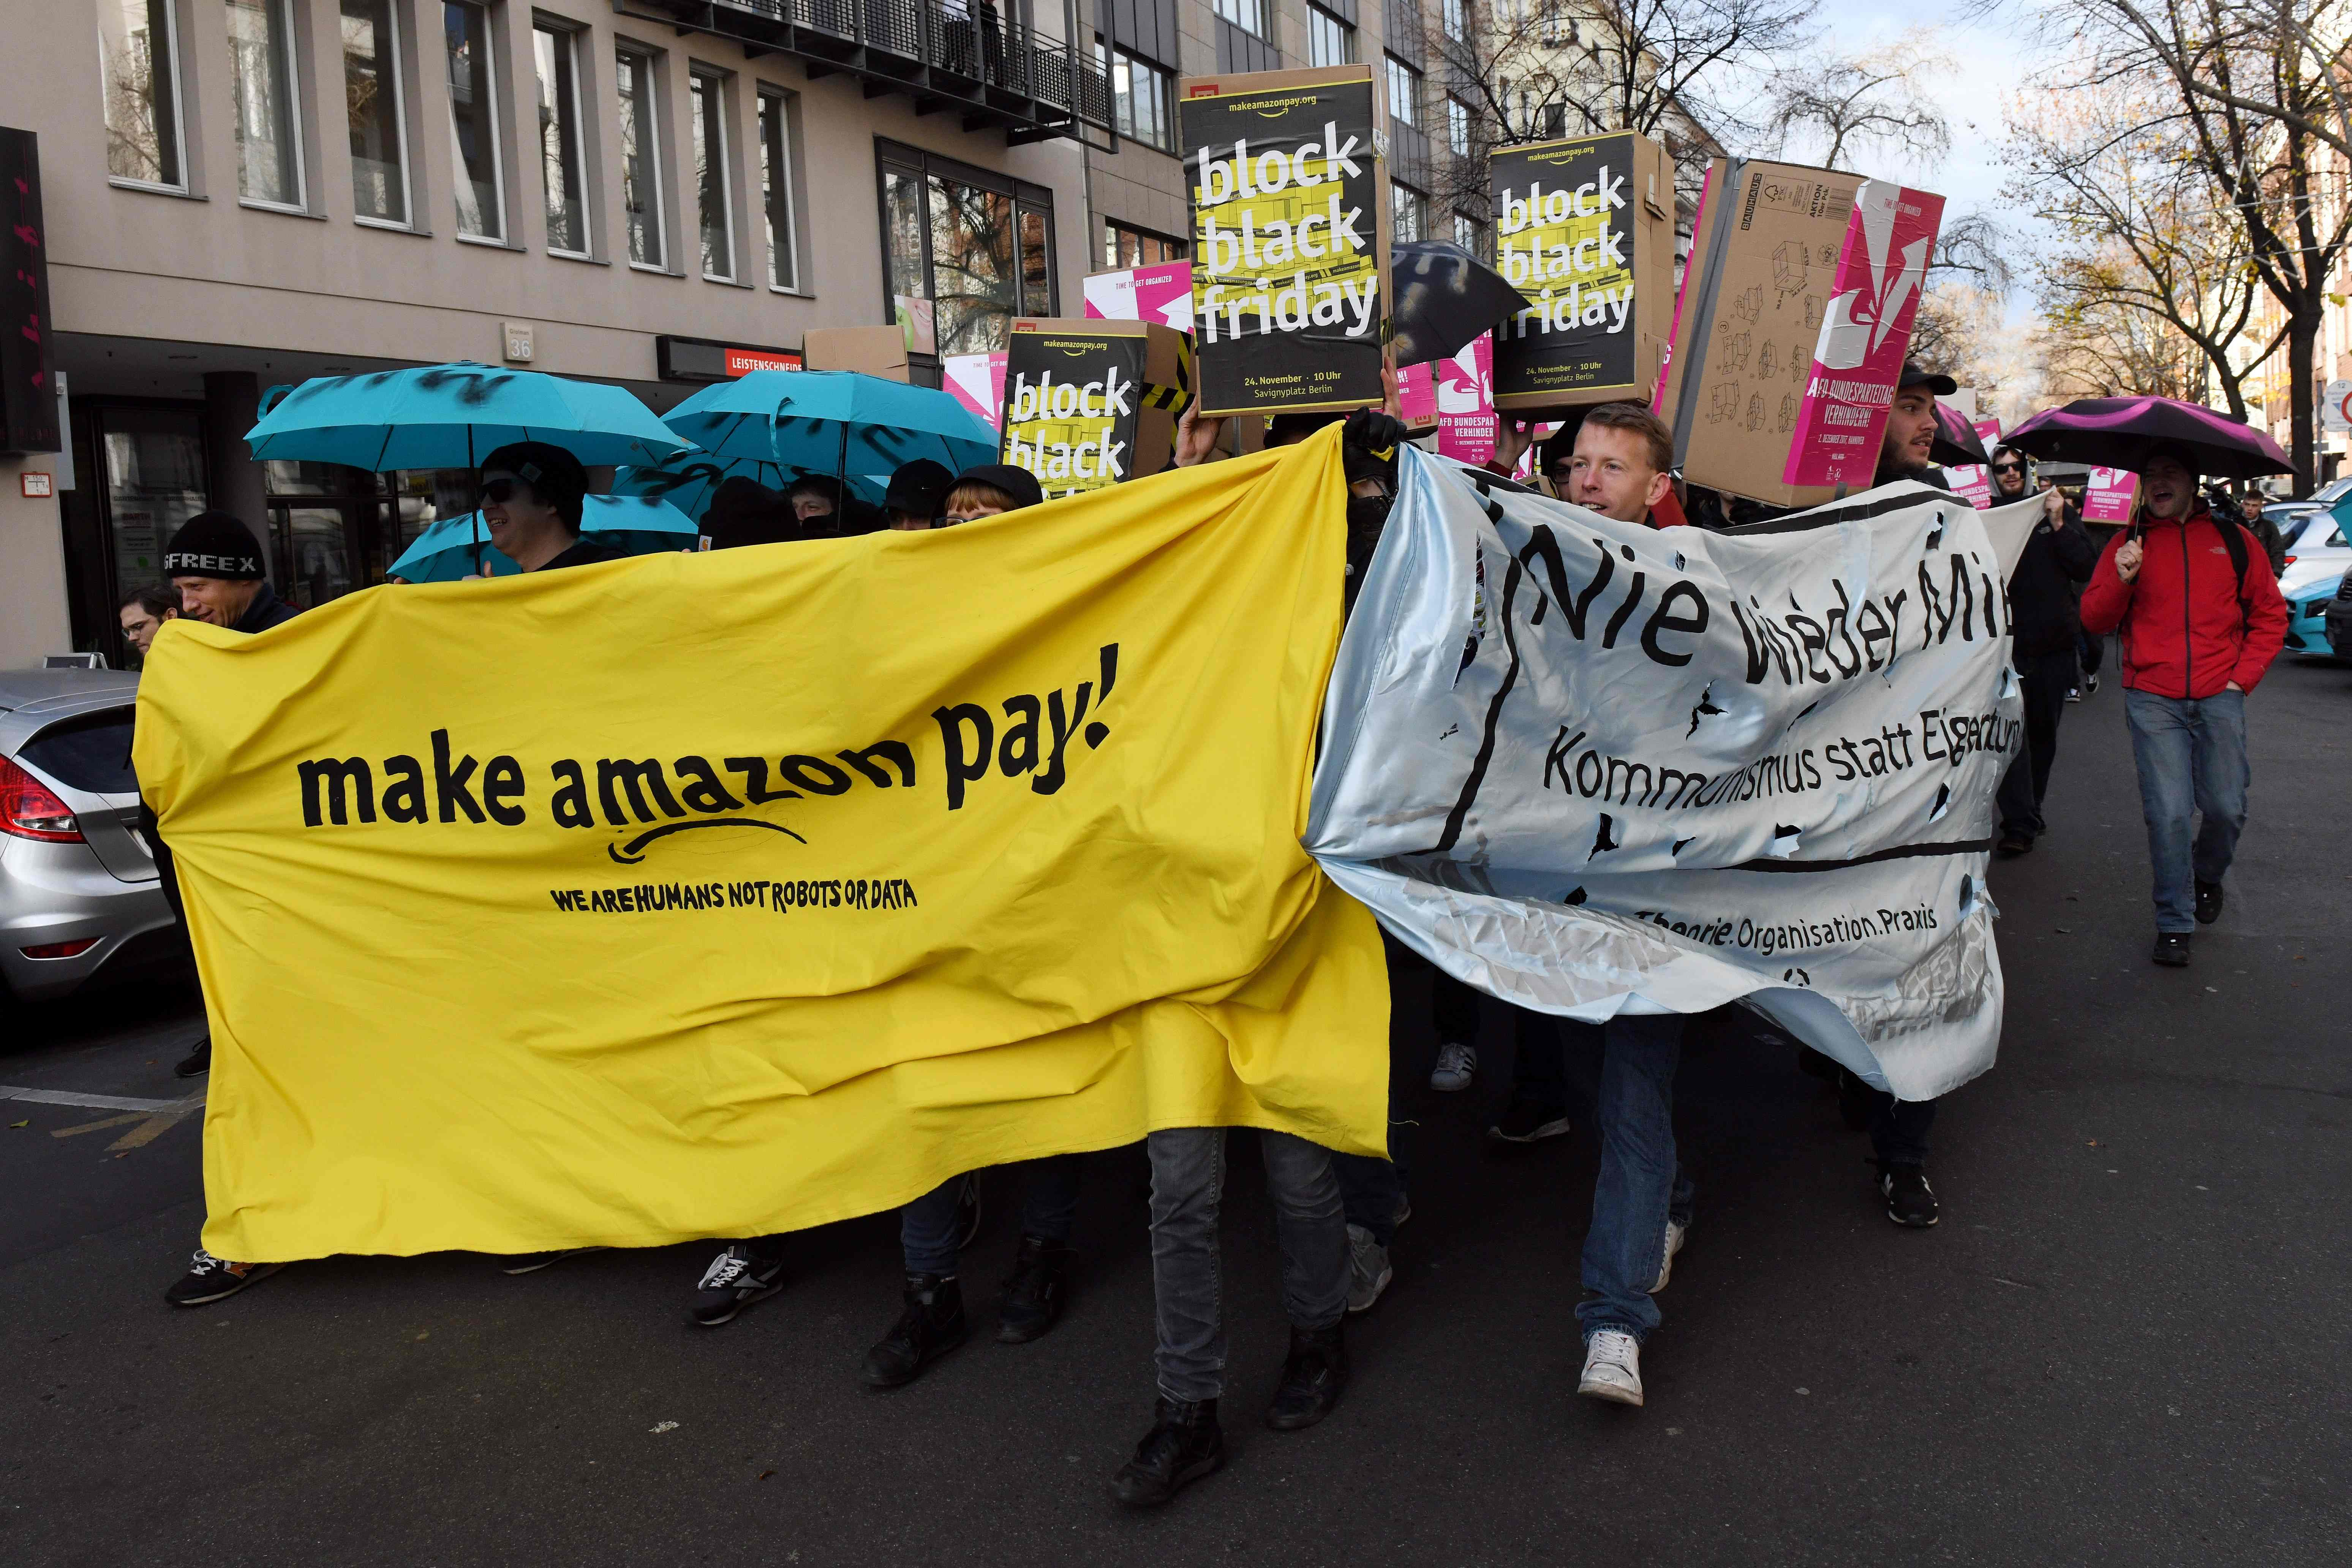 Black Friday In Germany Amazon Workers In Germany Italy Stage Black Friday Strike The